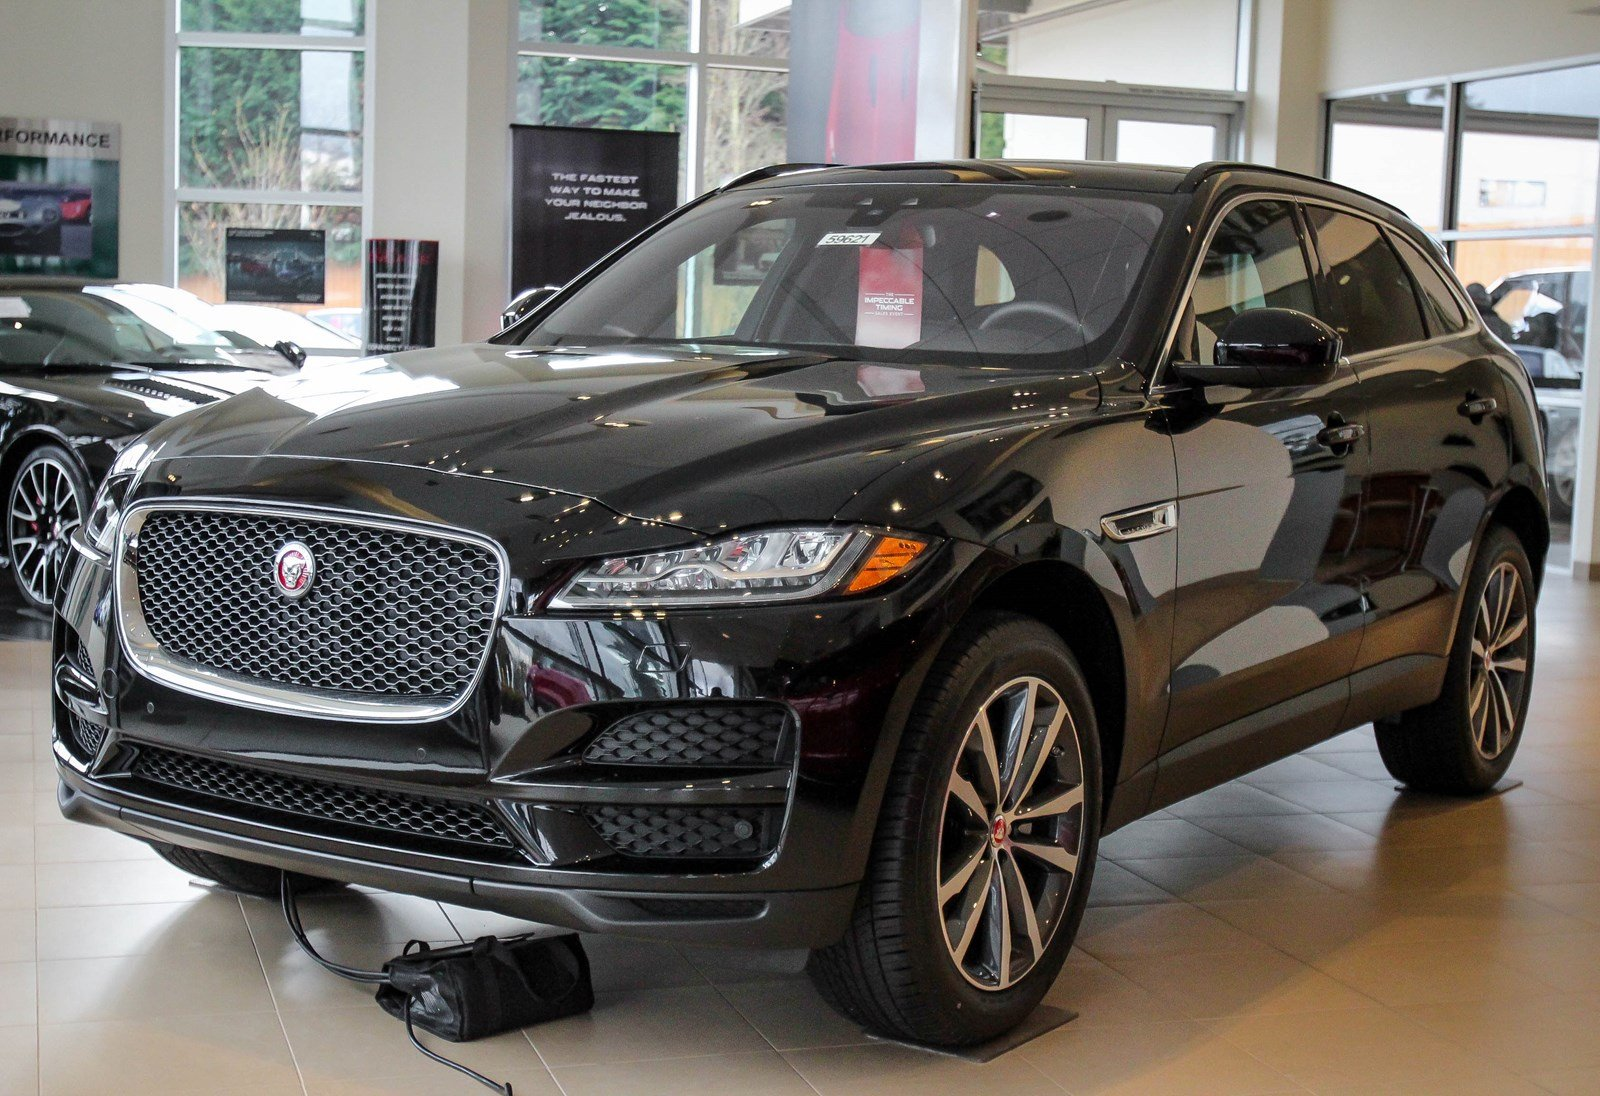 new 2017 jaguar f pace 20d prestige sport utility in lynnwood 59621 jaguar seattle. Black Bedroom Furniture Sets. Home Design Ideas